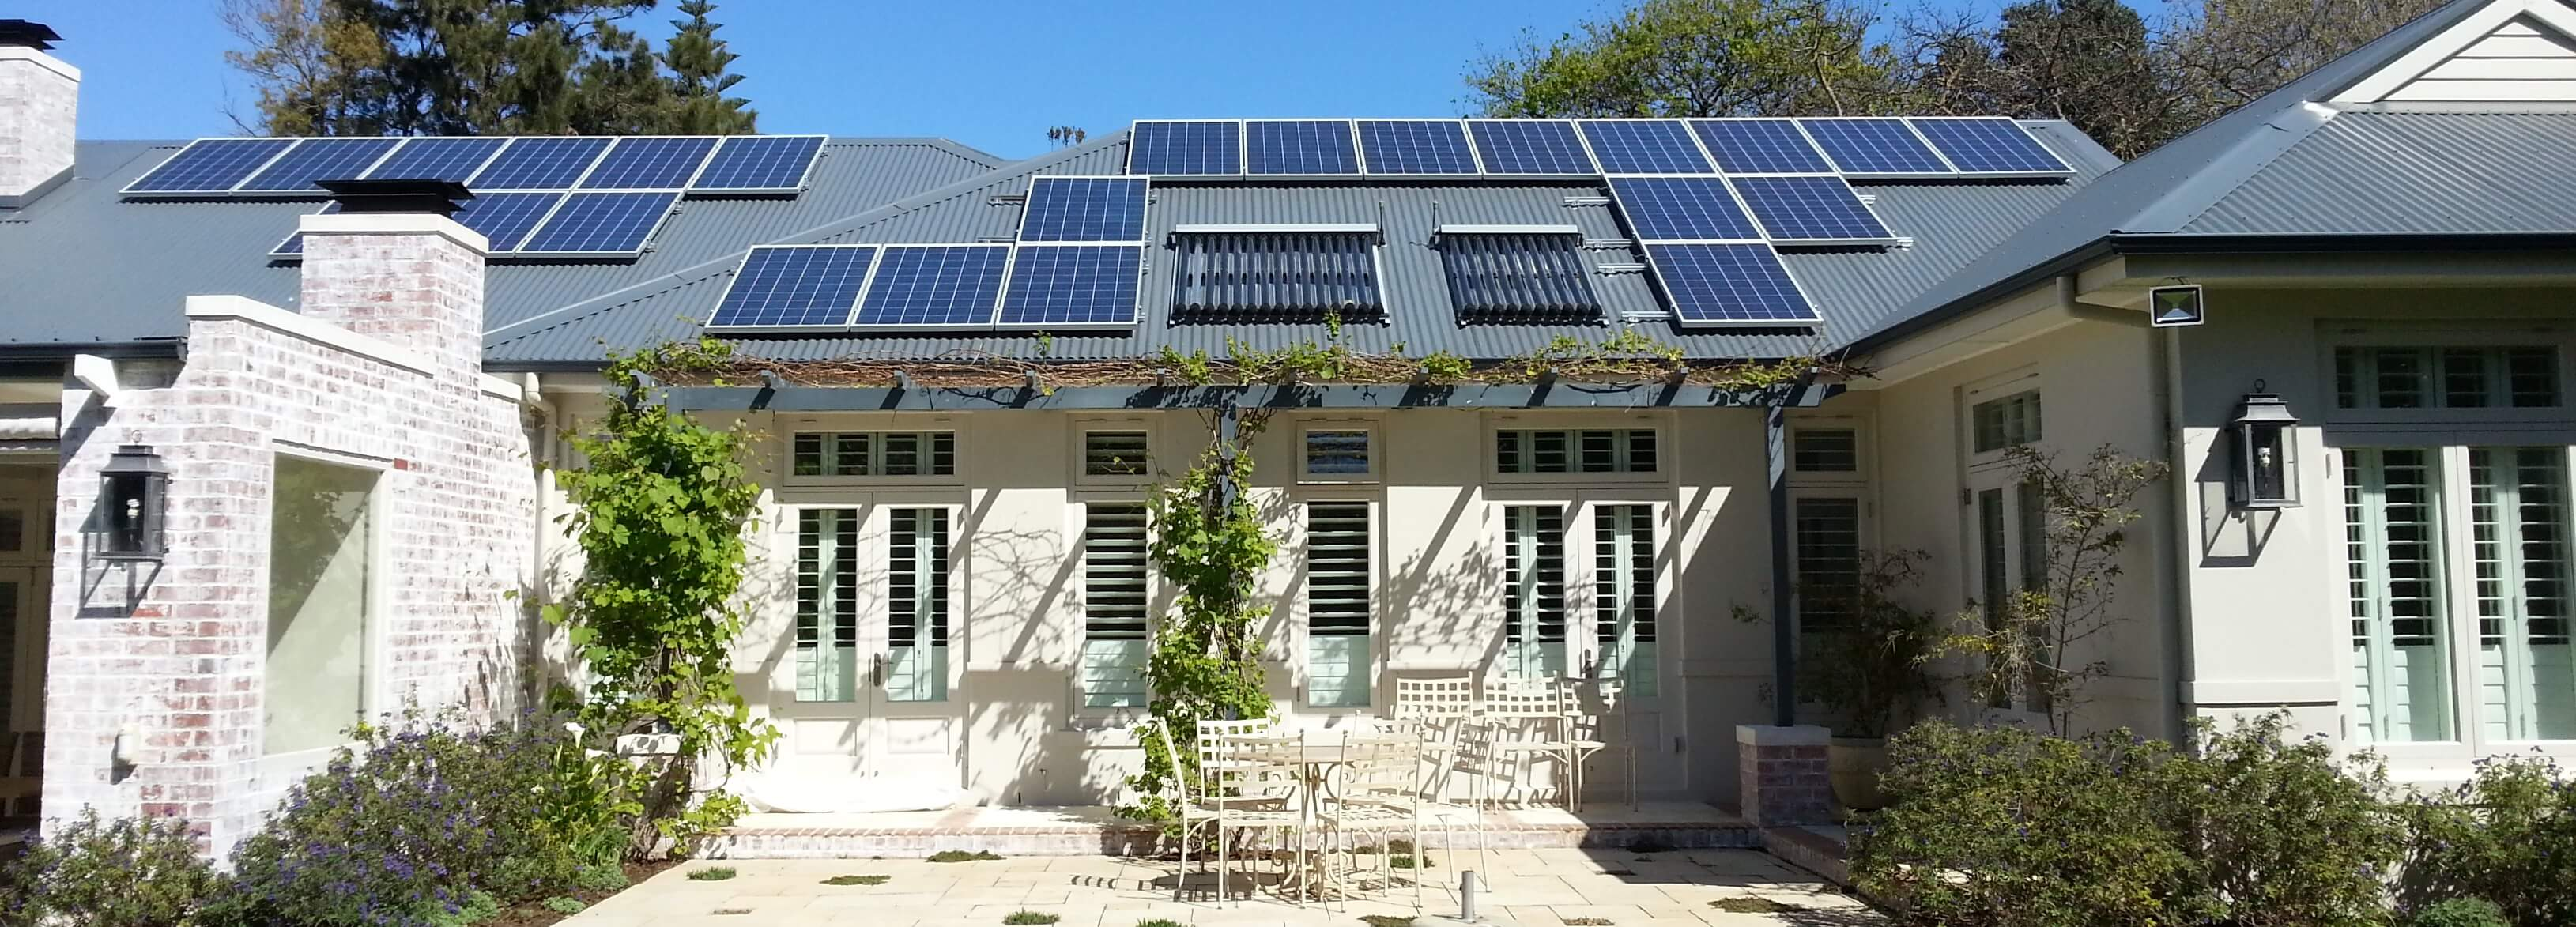 Renewable Energy Systems in Cape Town, Photovoltaic System with Battery